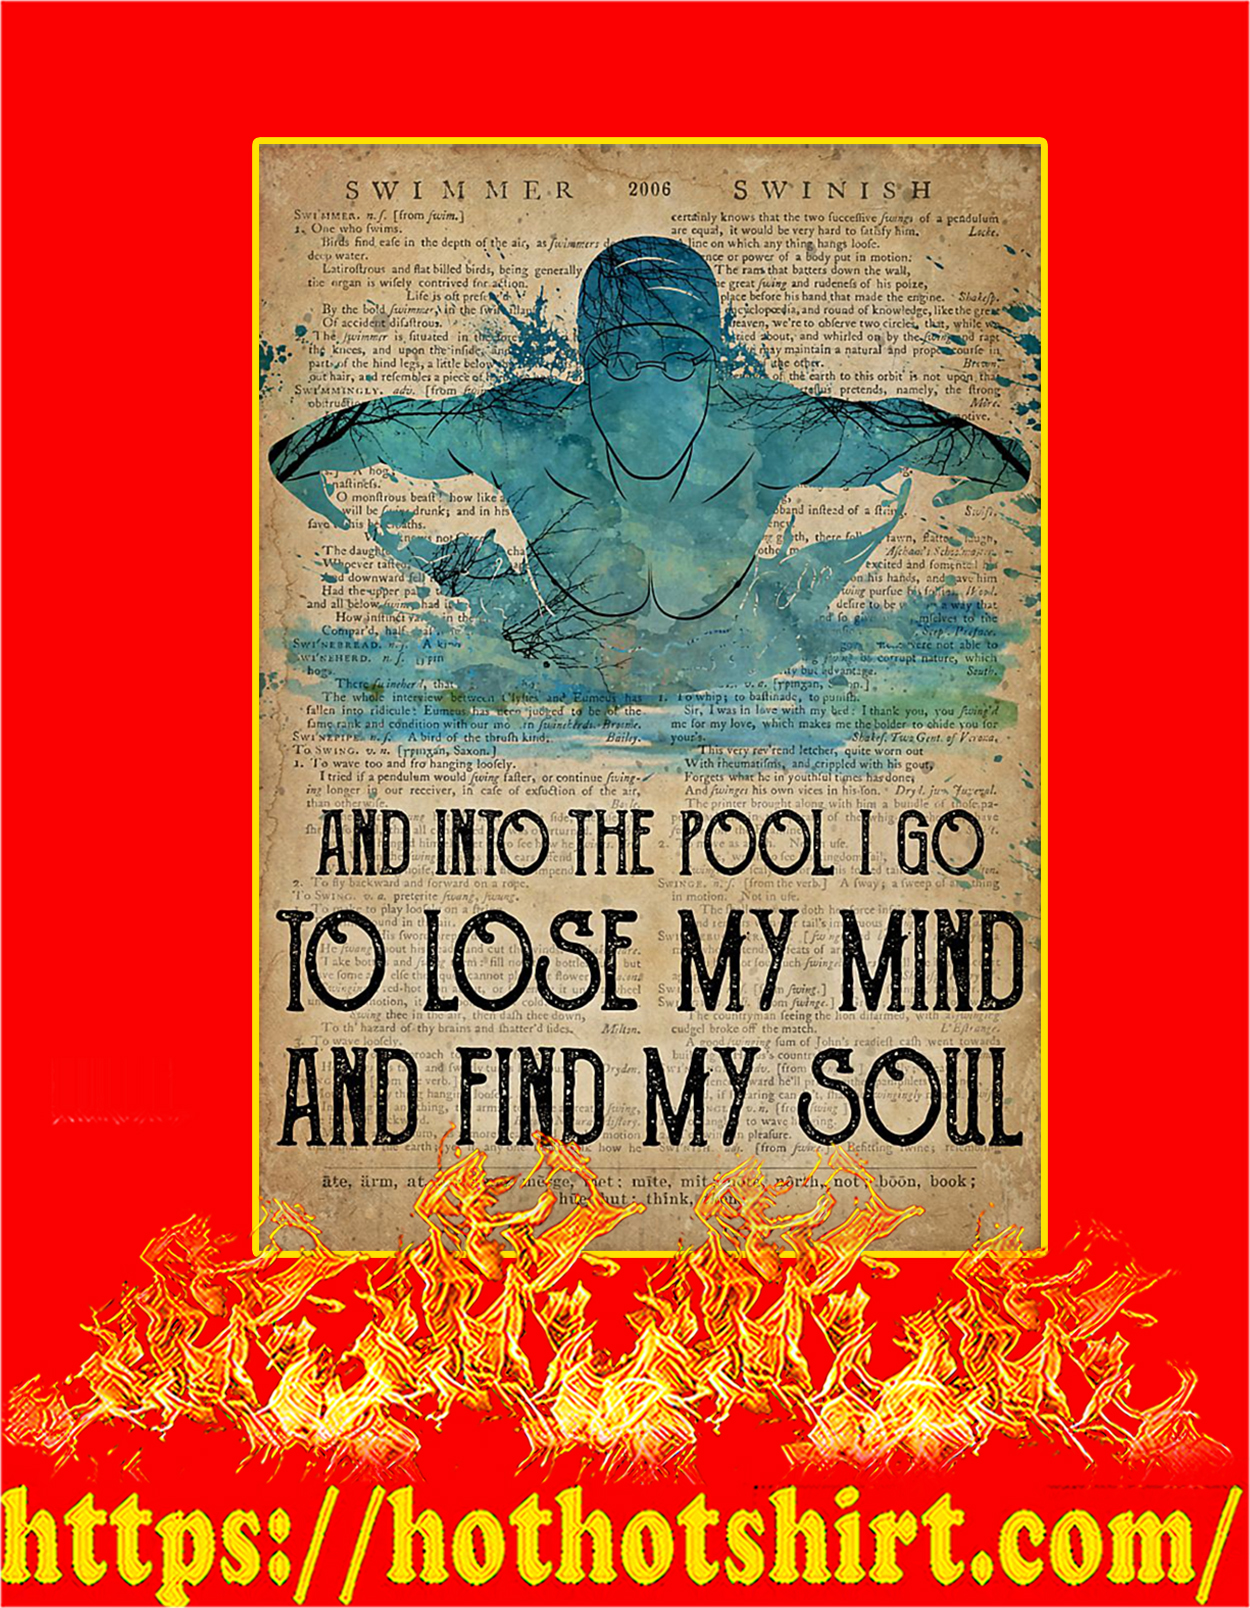 Swimming to loose my mind and find my soul poster - A3